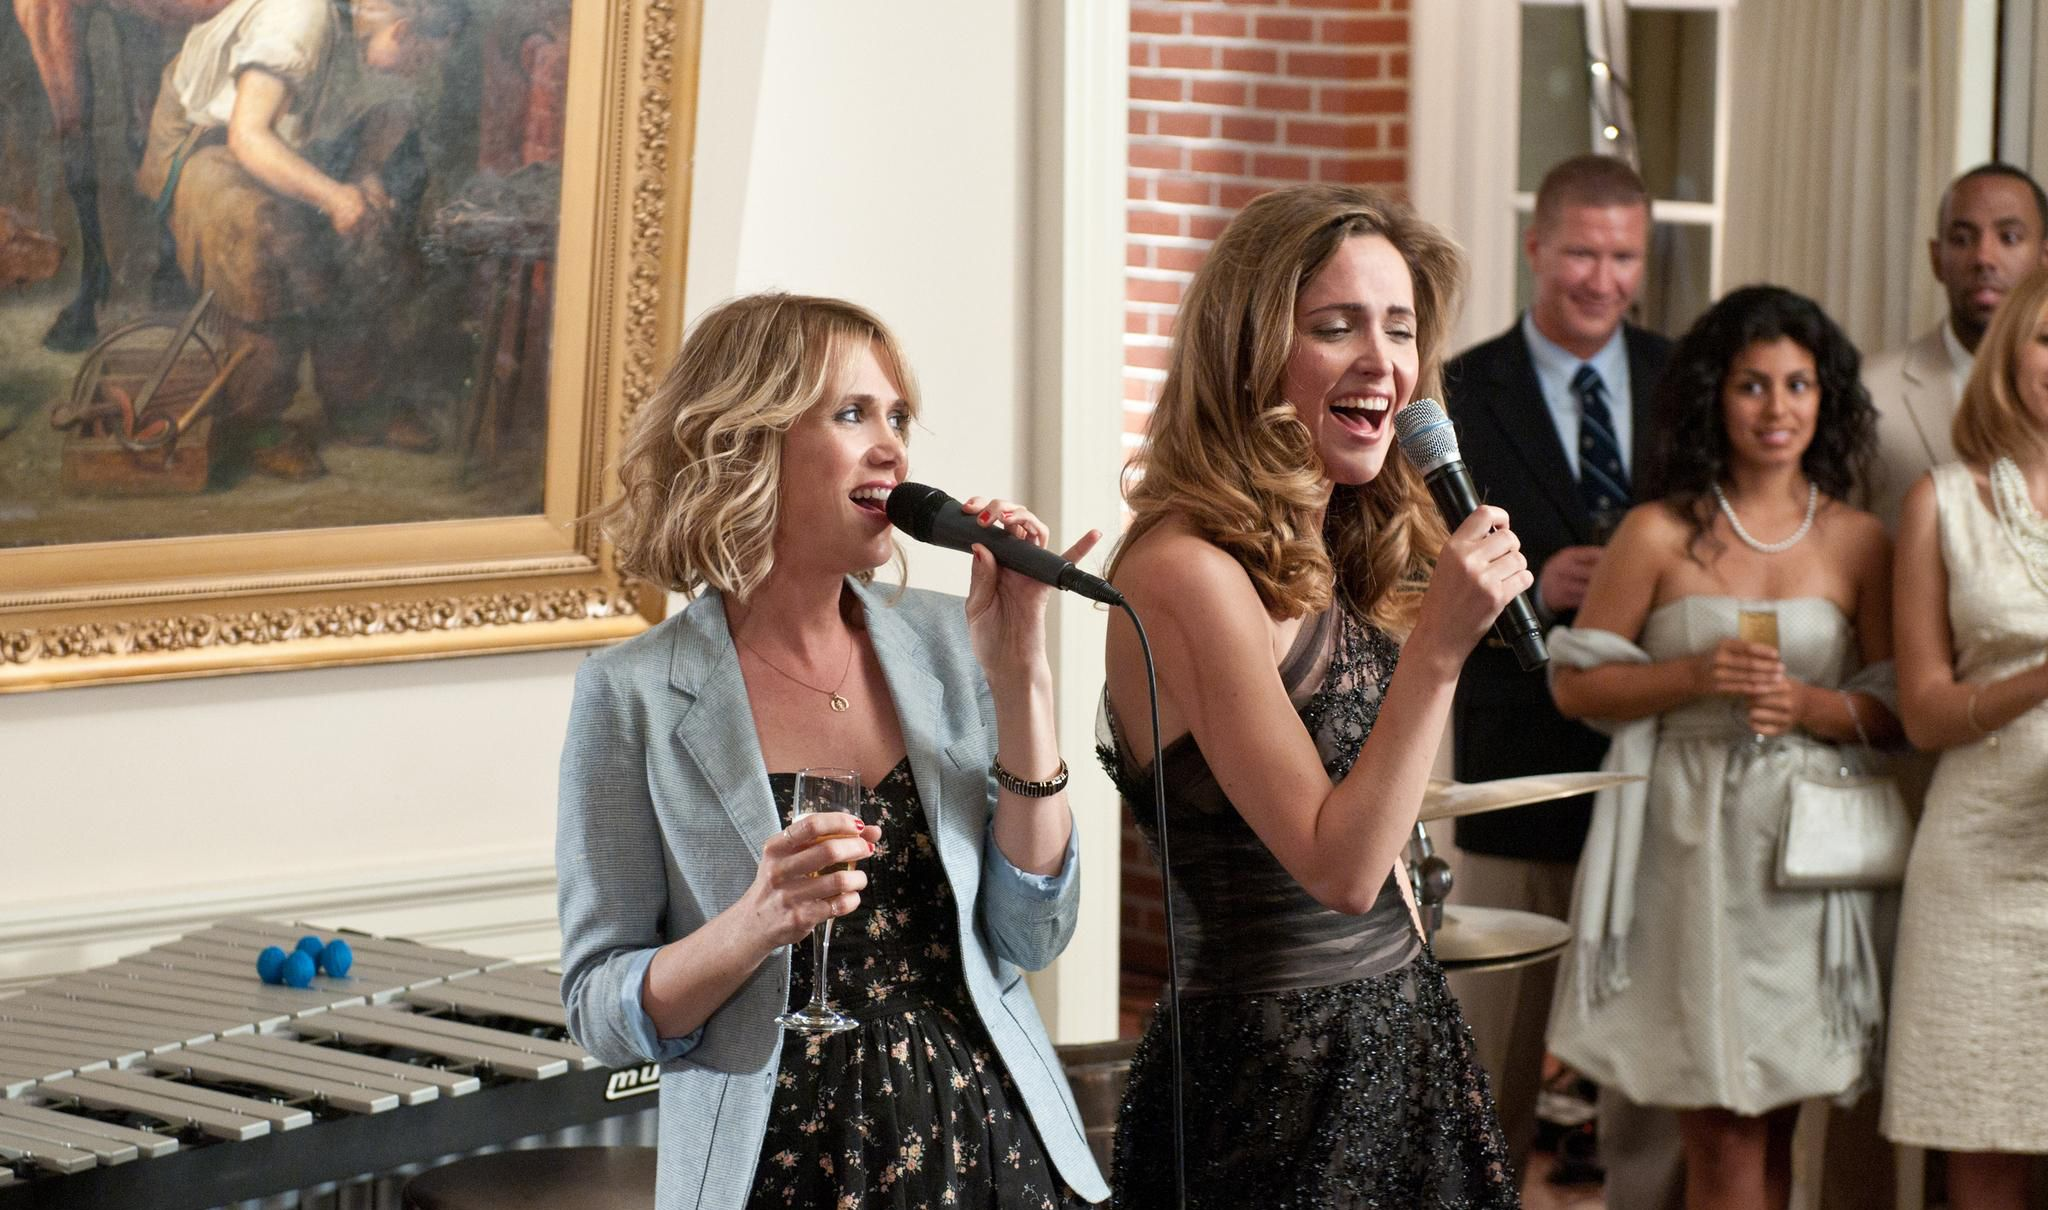 An image from Bridesmaids